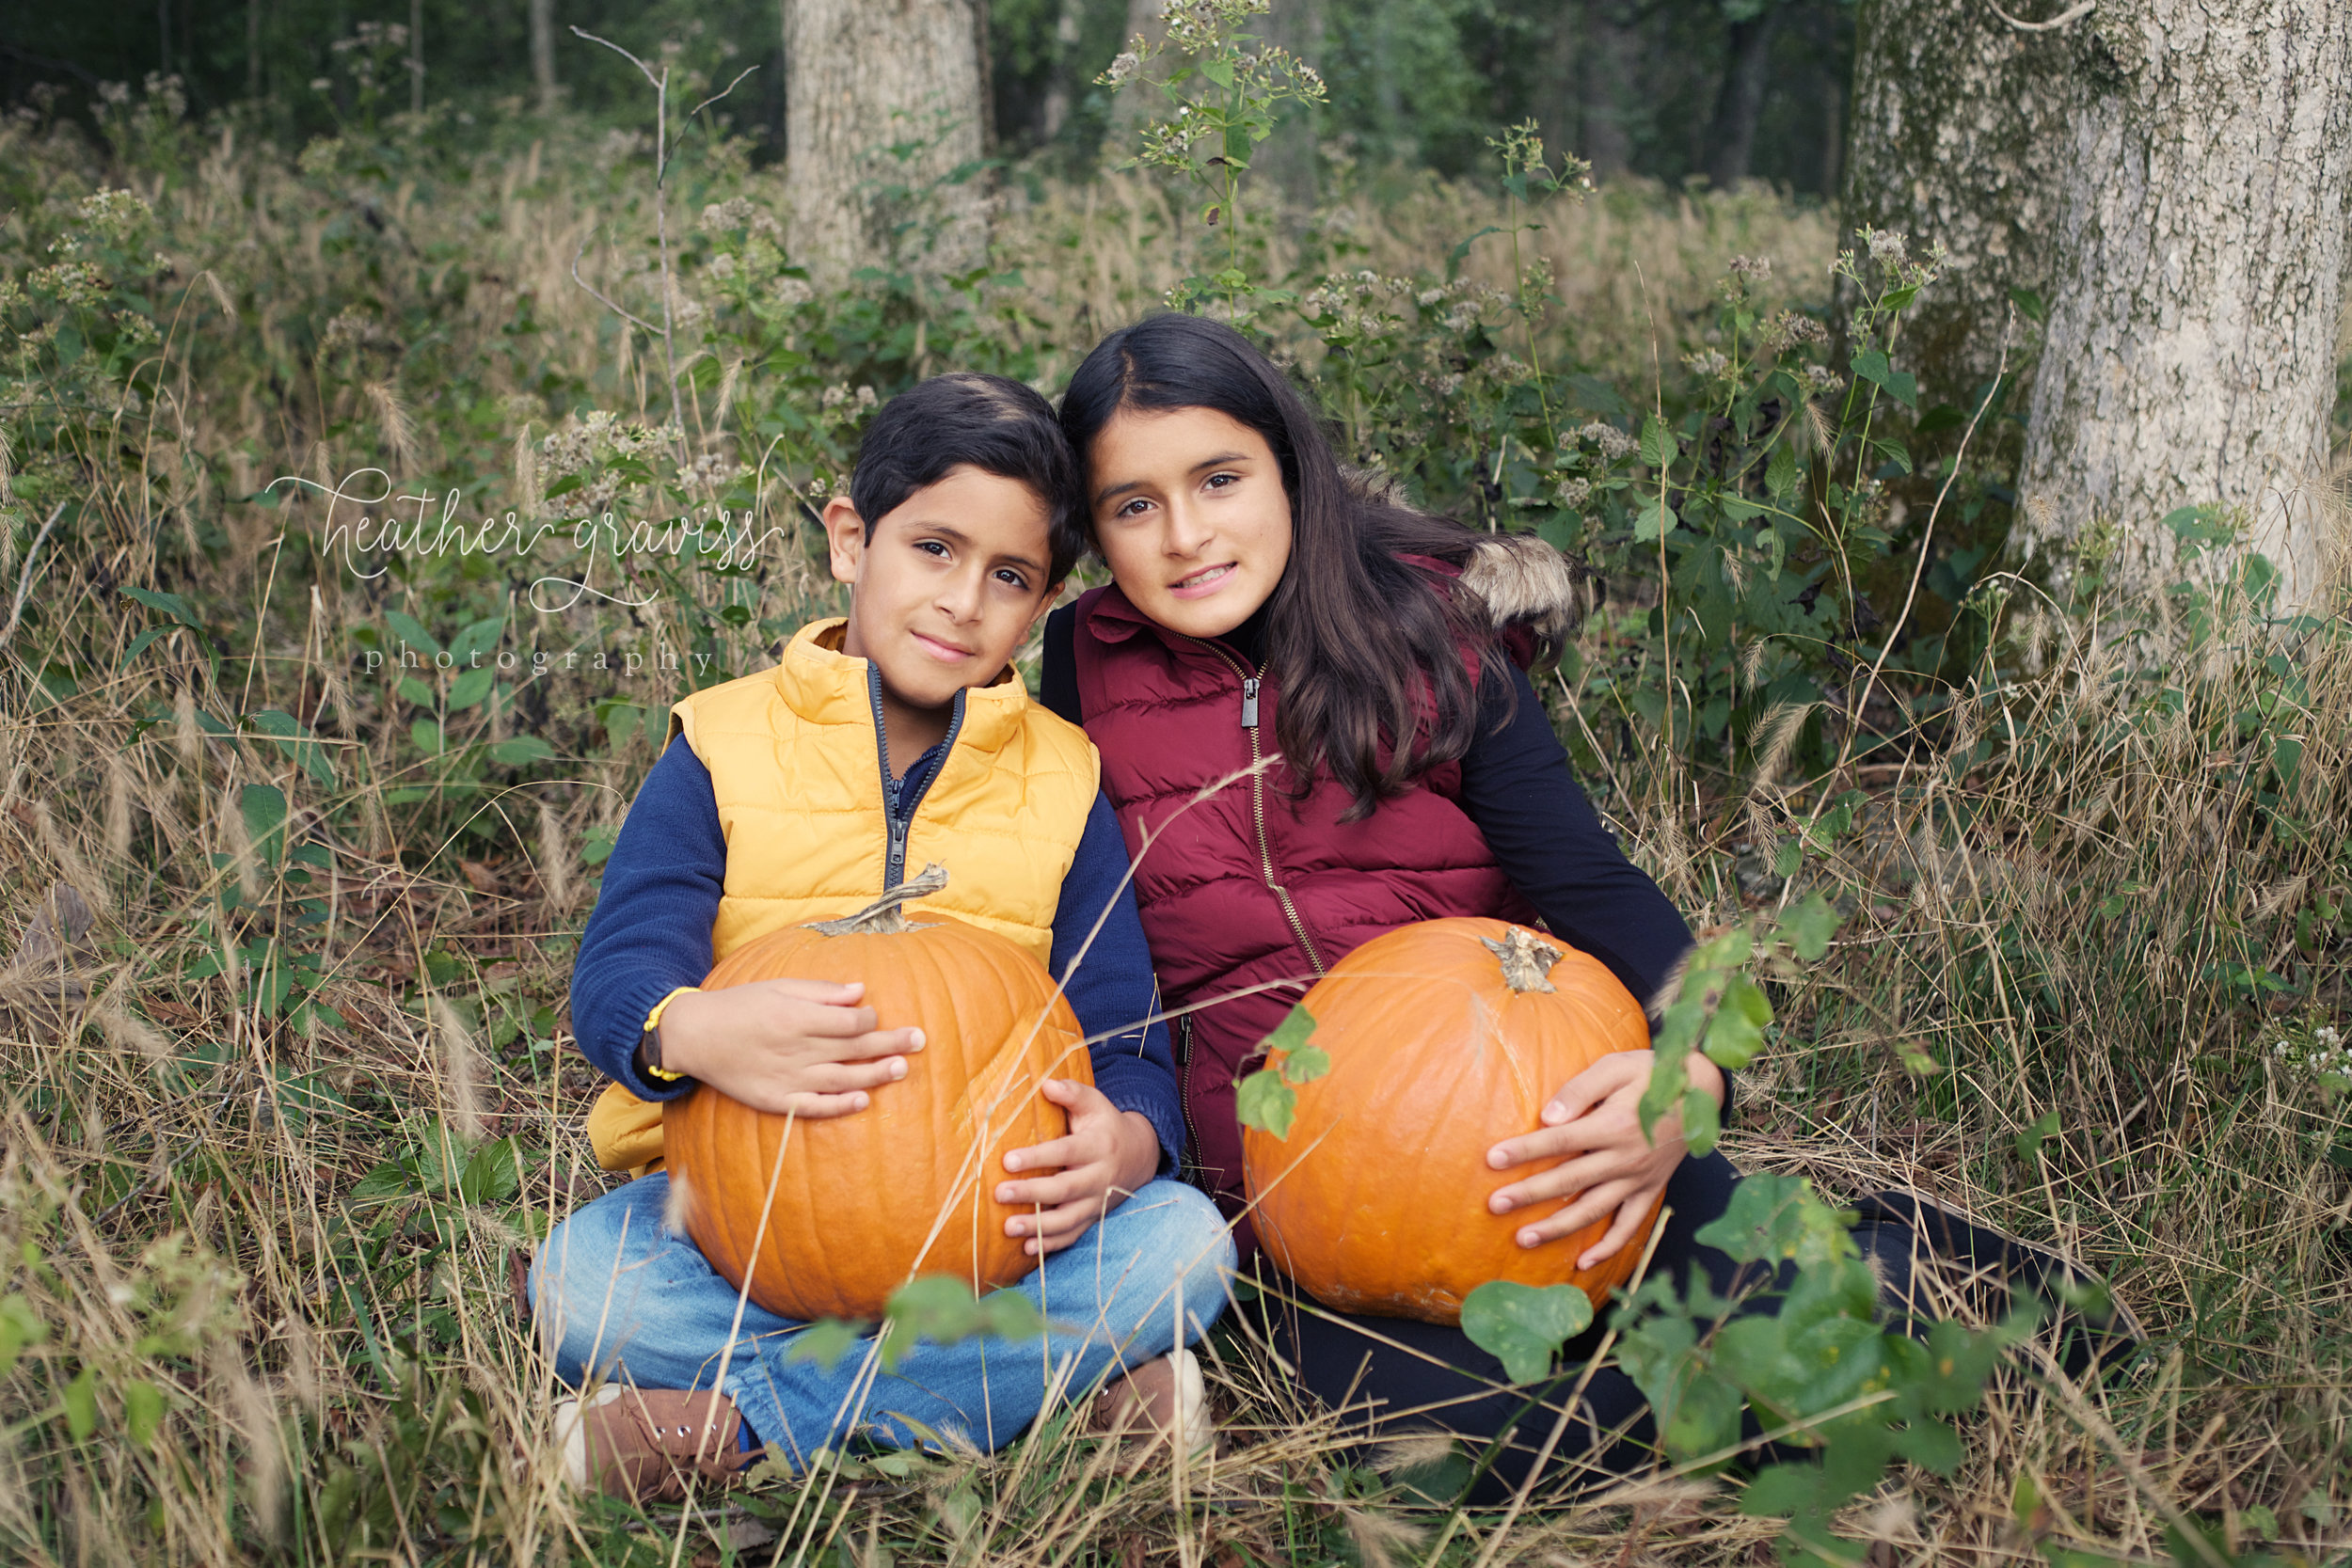 kids-sitting-with-pumpkins.jpg